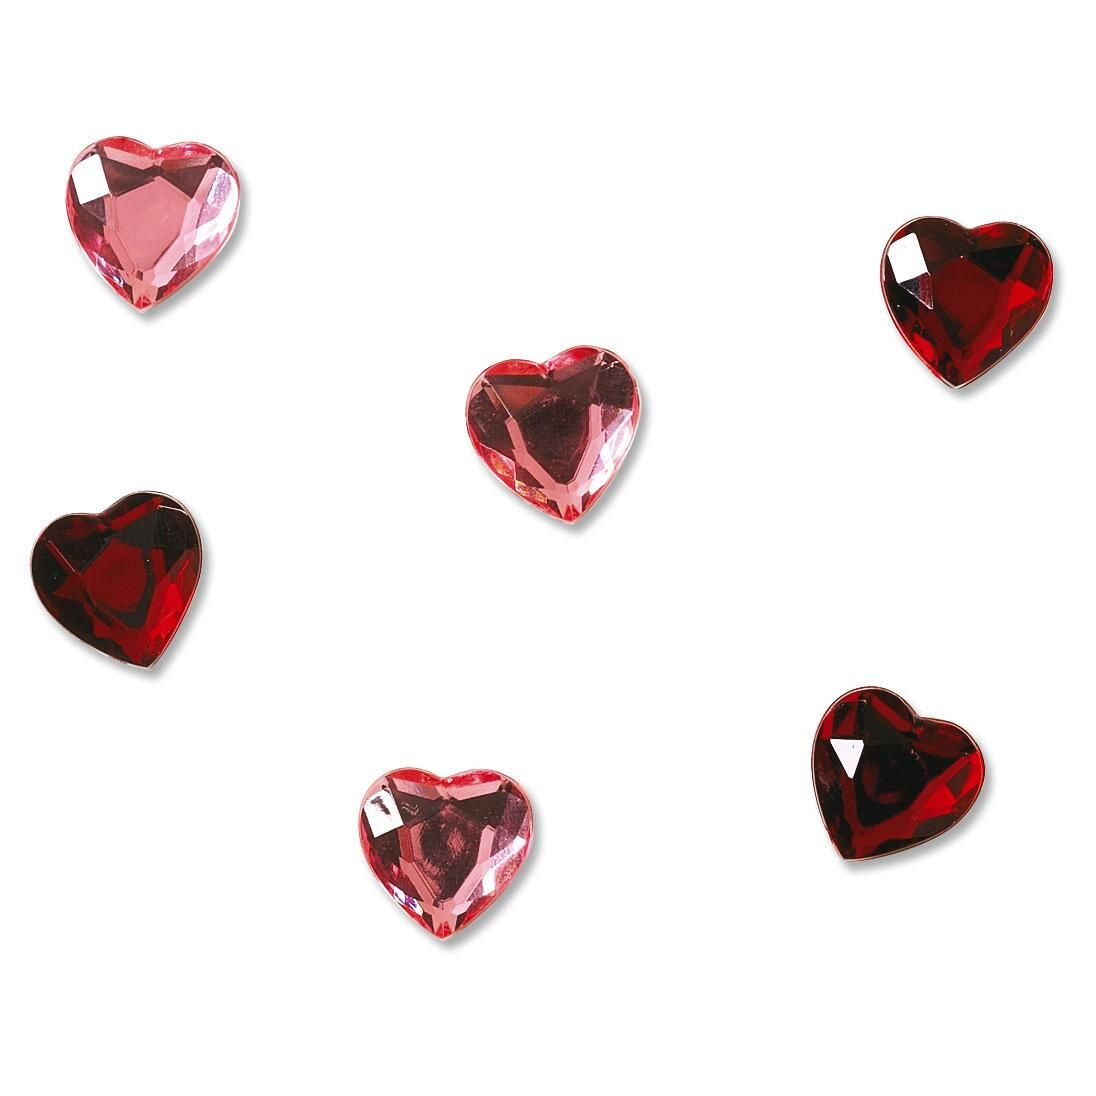 Mini Heart Magnets